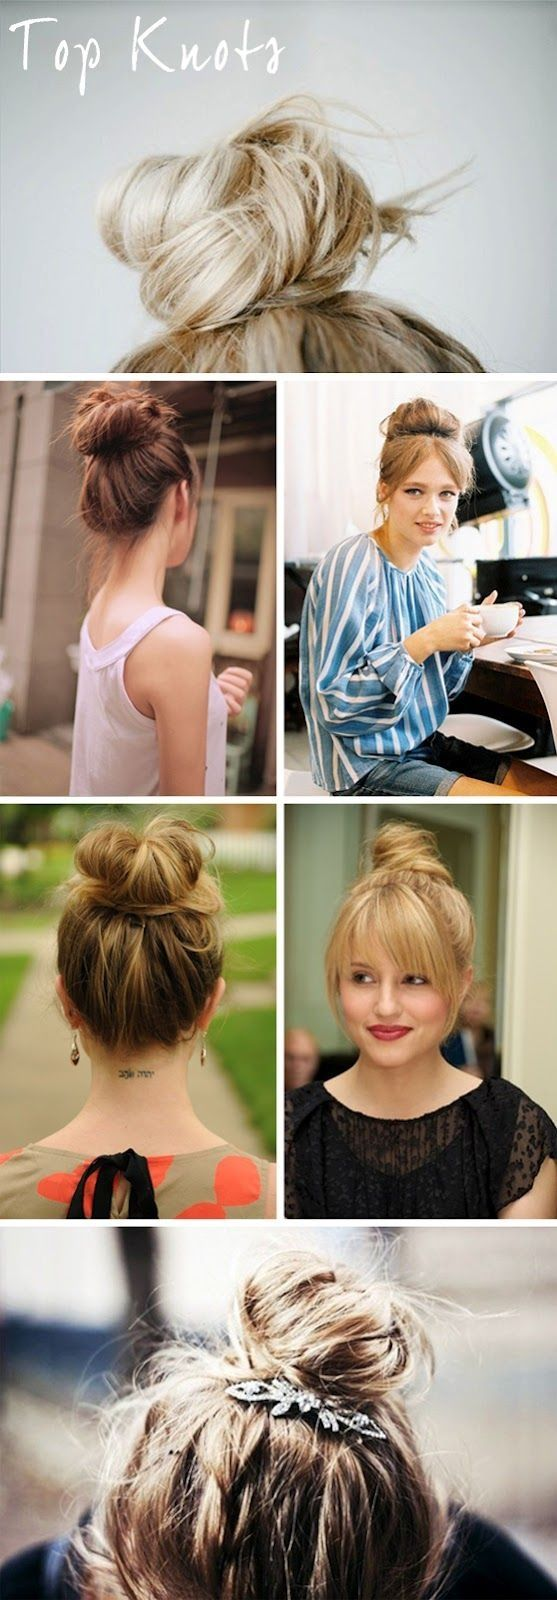 Pin by Alli Willemsen on Hair  Pinterest  Hair style